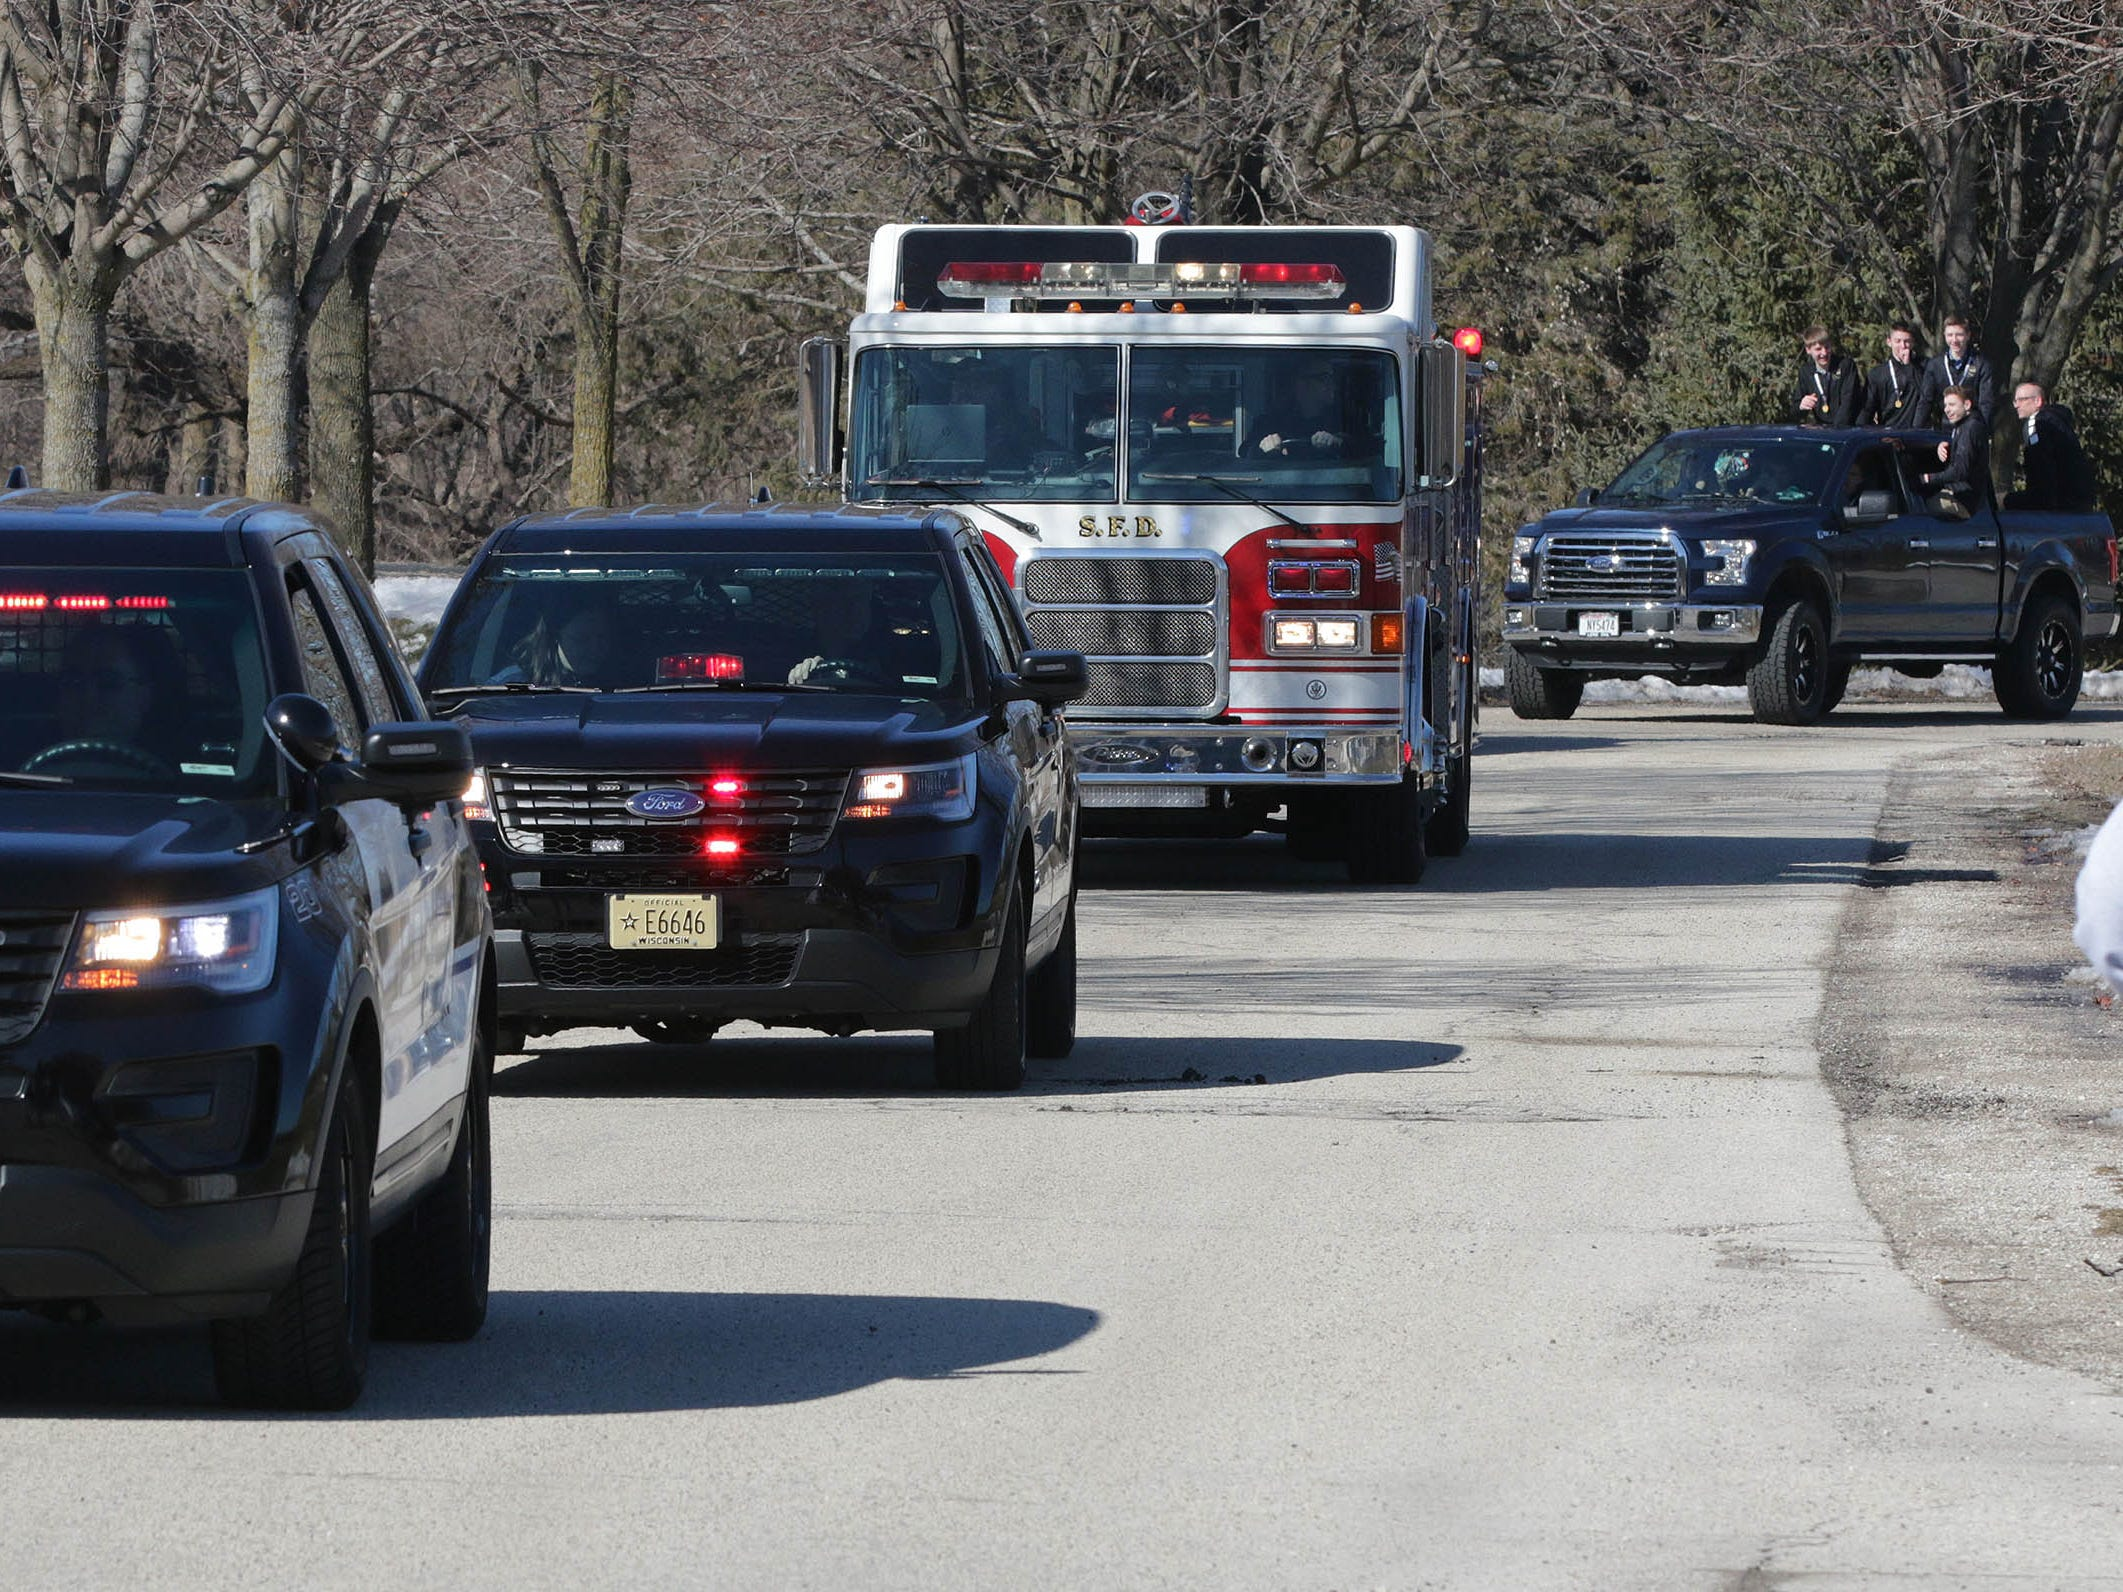 Police and fire vehicles escort the WIAA Div. 5 State Champions back to Sheboygan Lutheran High School, Sunday, March 17, 2019, in Sheboygan, Wis.